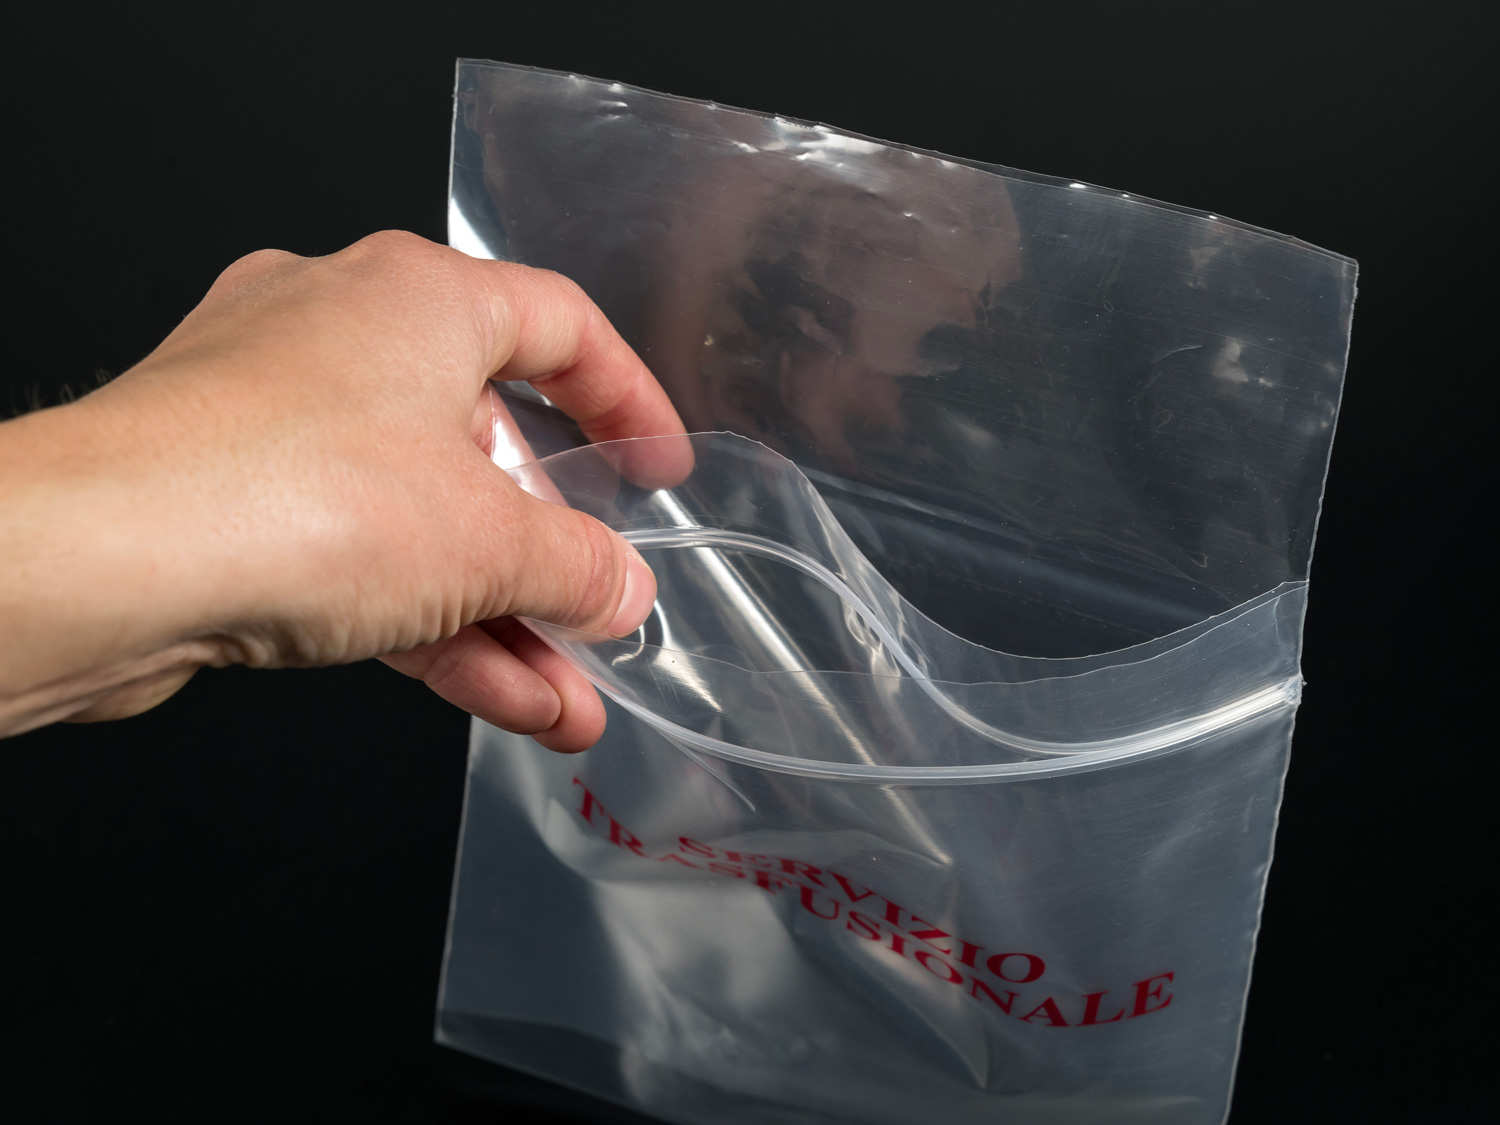 Buste Biohazard doppia tasca campioni laboratorio BIOHAZARD SPECIMEN BAGS WITH DUAL POCKET FOR LAB SAMPLES TRANSPORT